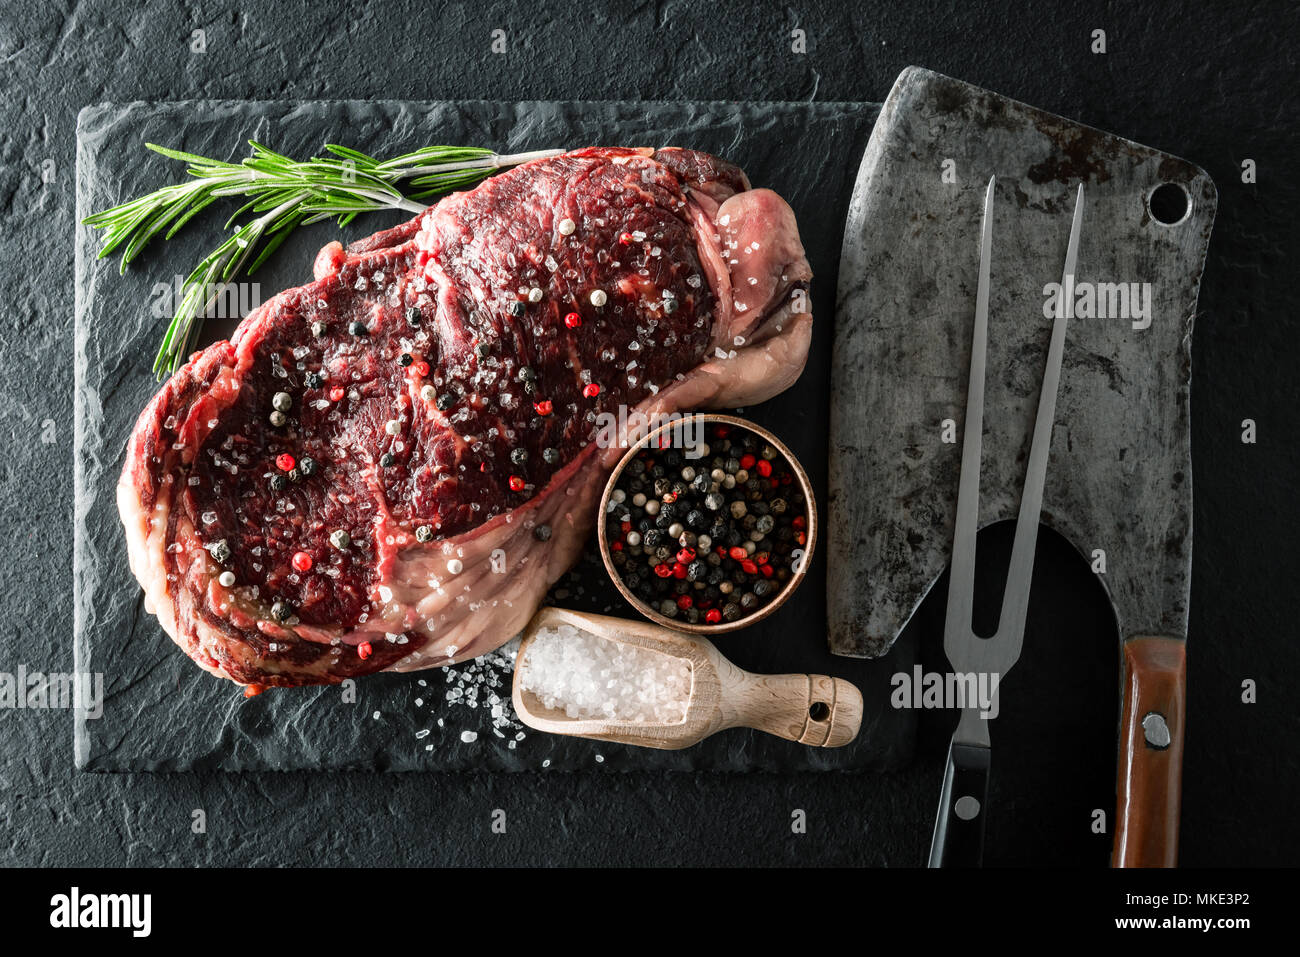 Marbling ribeye steak on black plate - Stock Image